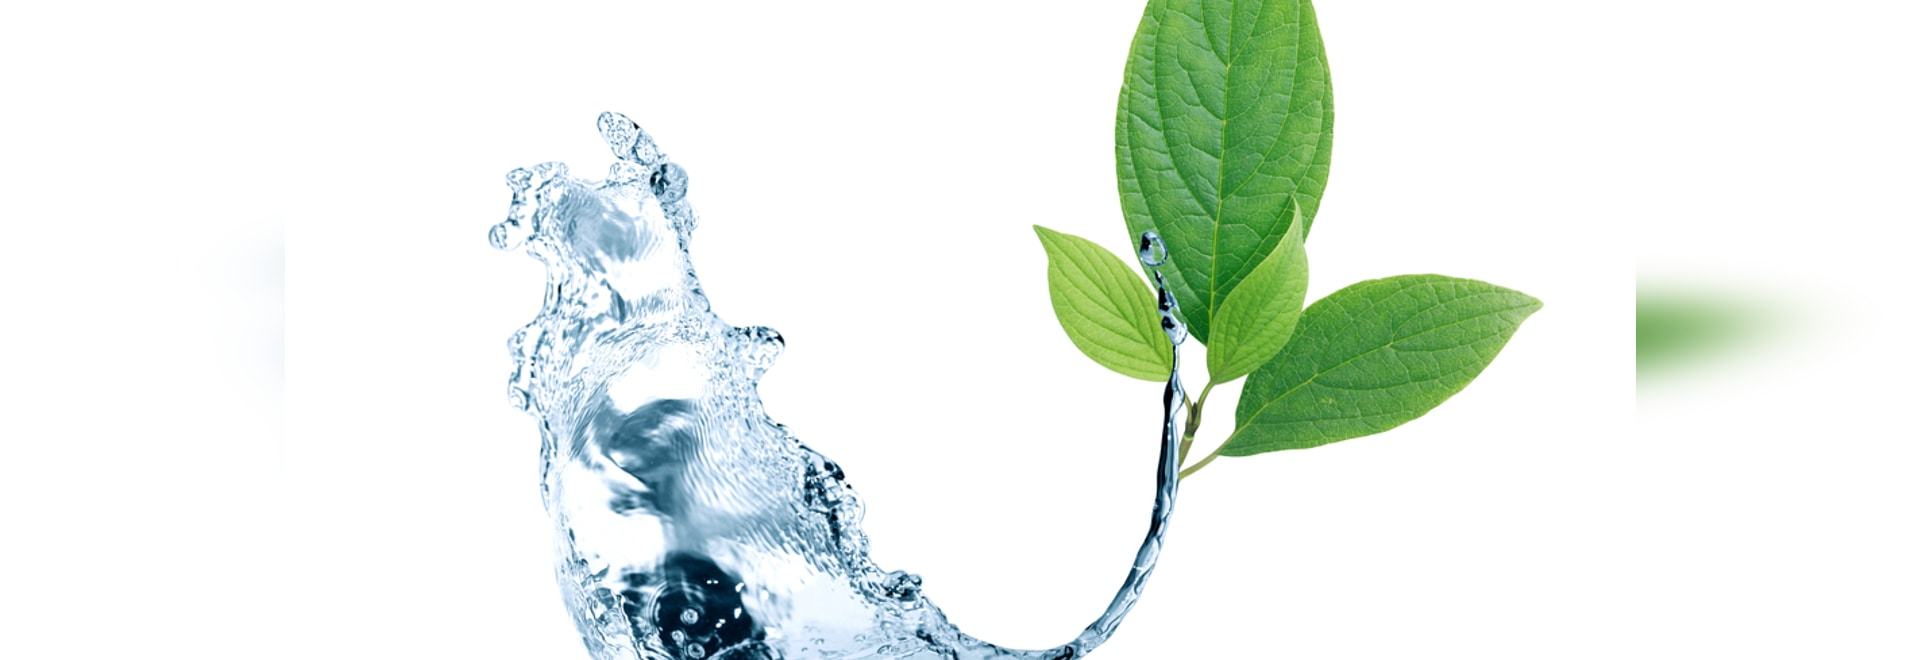 SPRAY SYSTEMS FOR ECOLOGY AND WATER TREATMENT